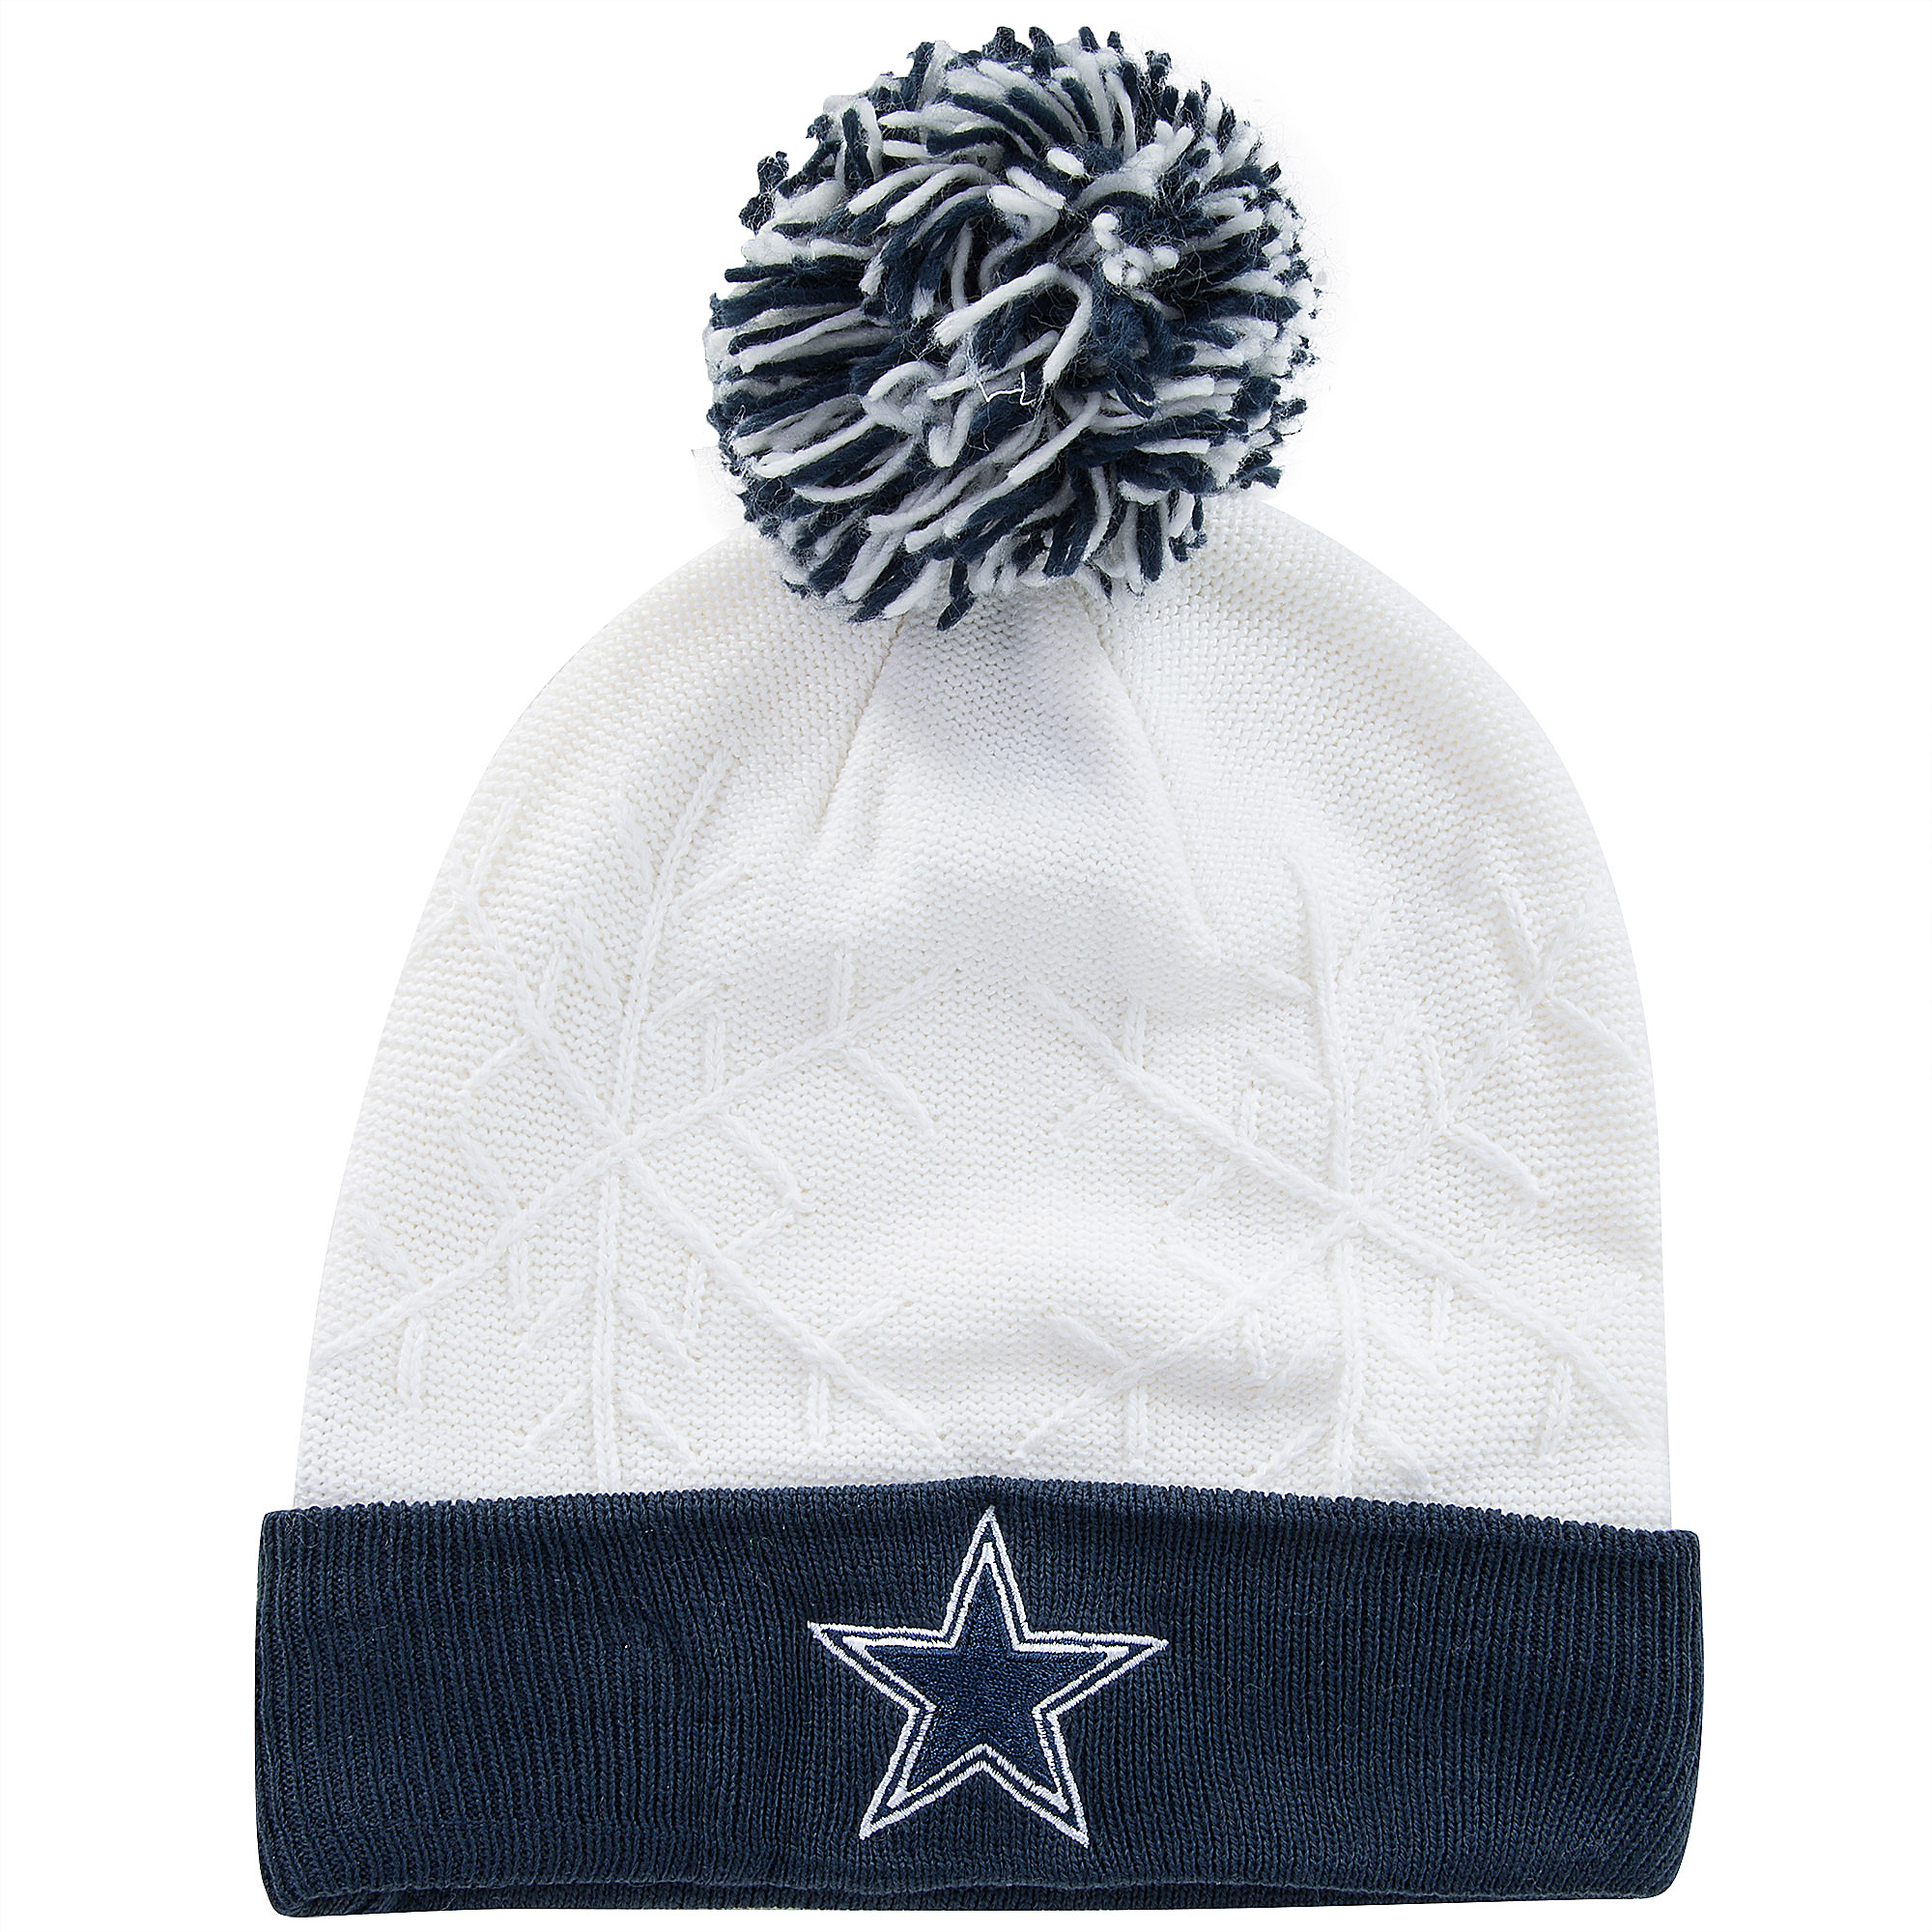 27322b3e order dallas cowboys white knit hat cbaaf ab260